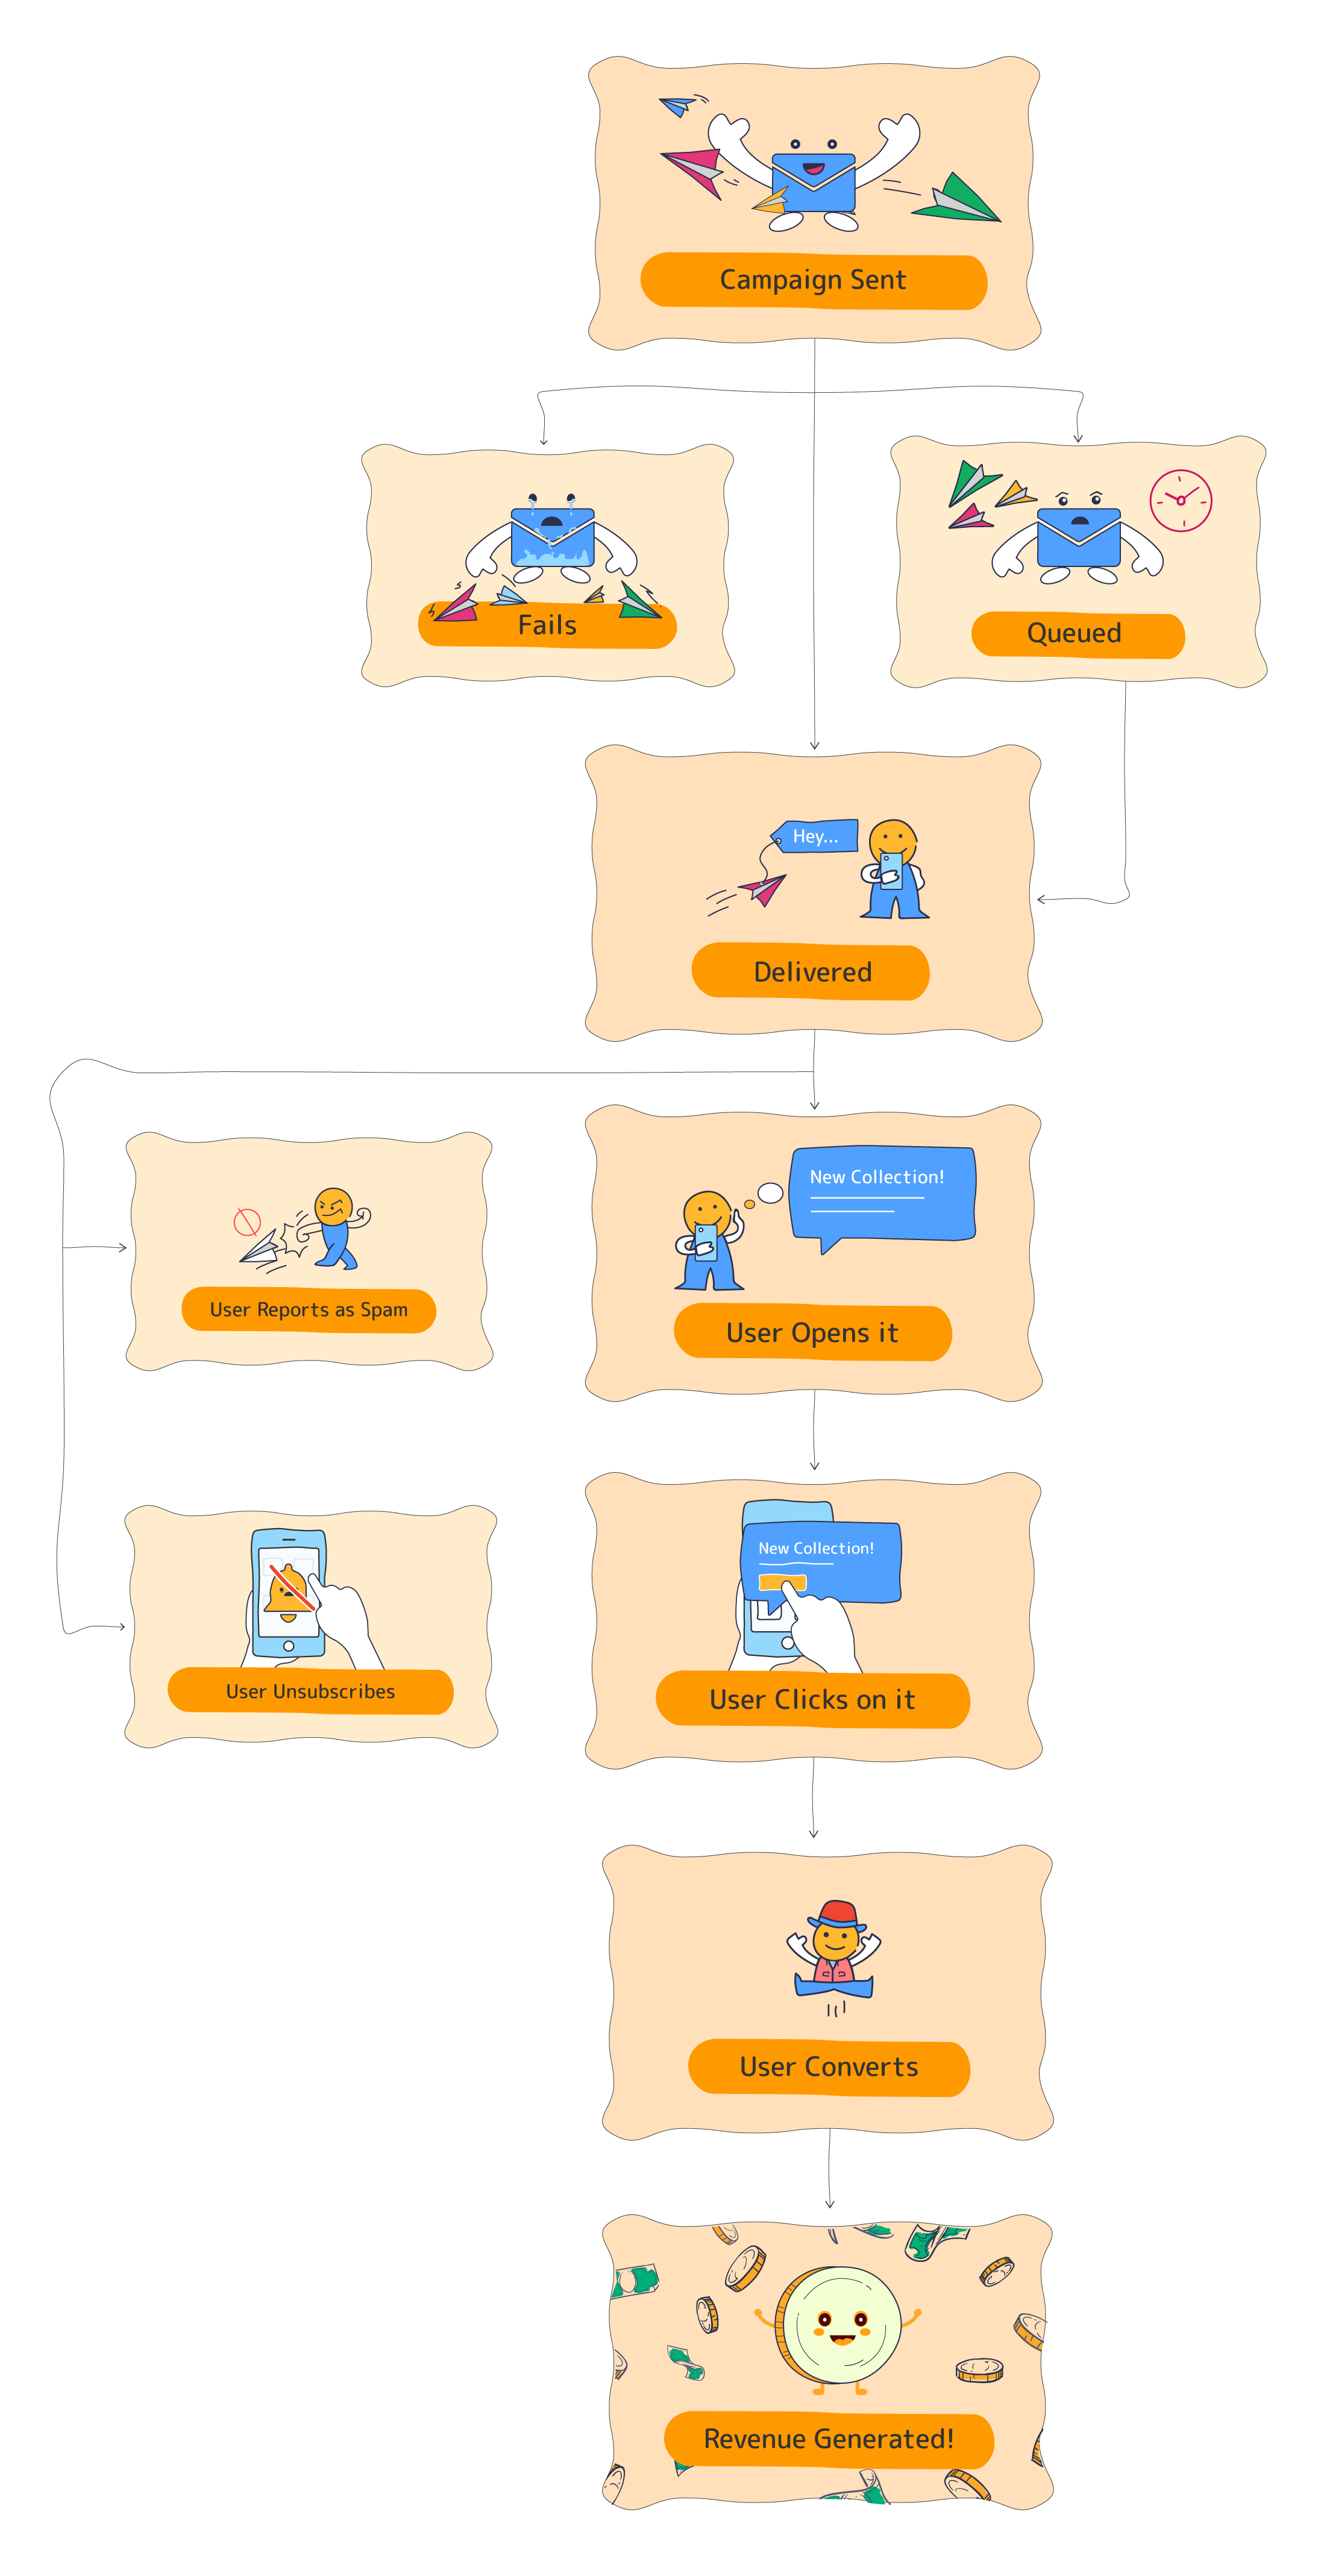 The lifecycle of an Email campaign